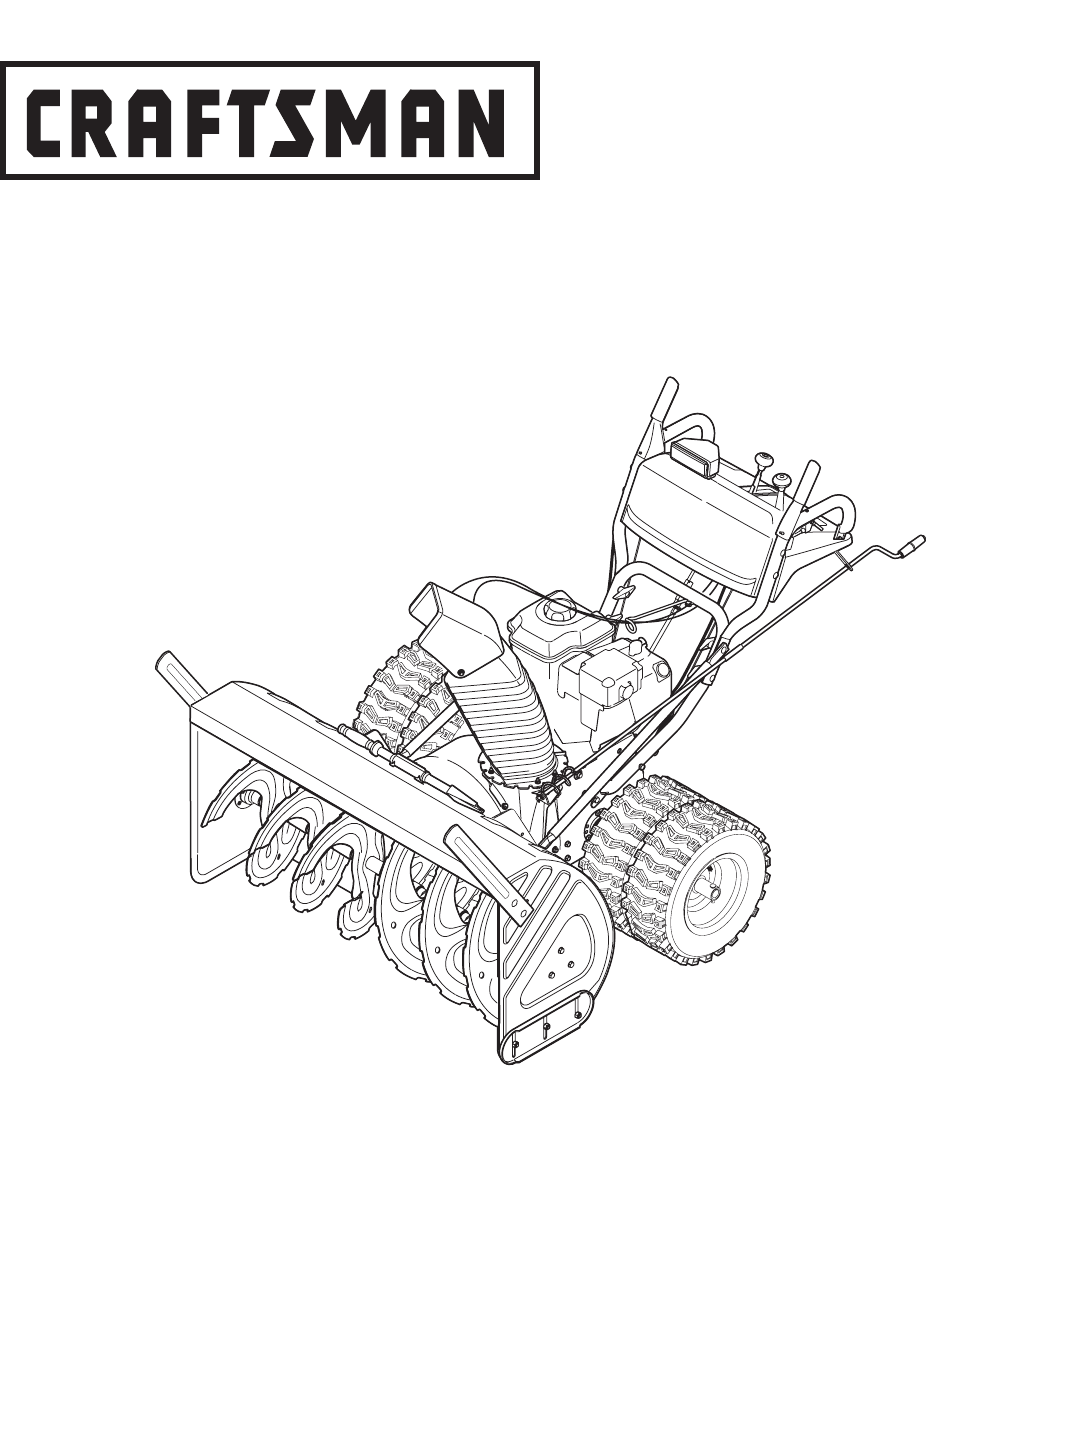 Craftsman Snow Blower C459-52833 User Guide